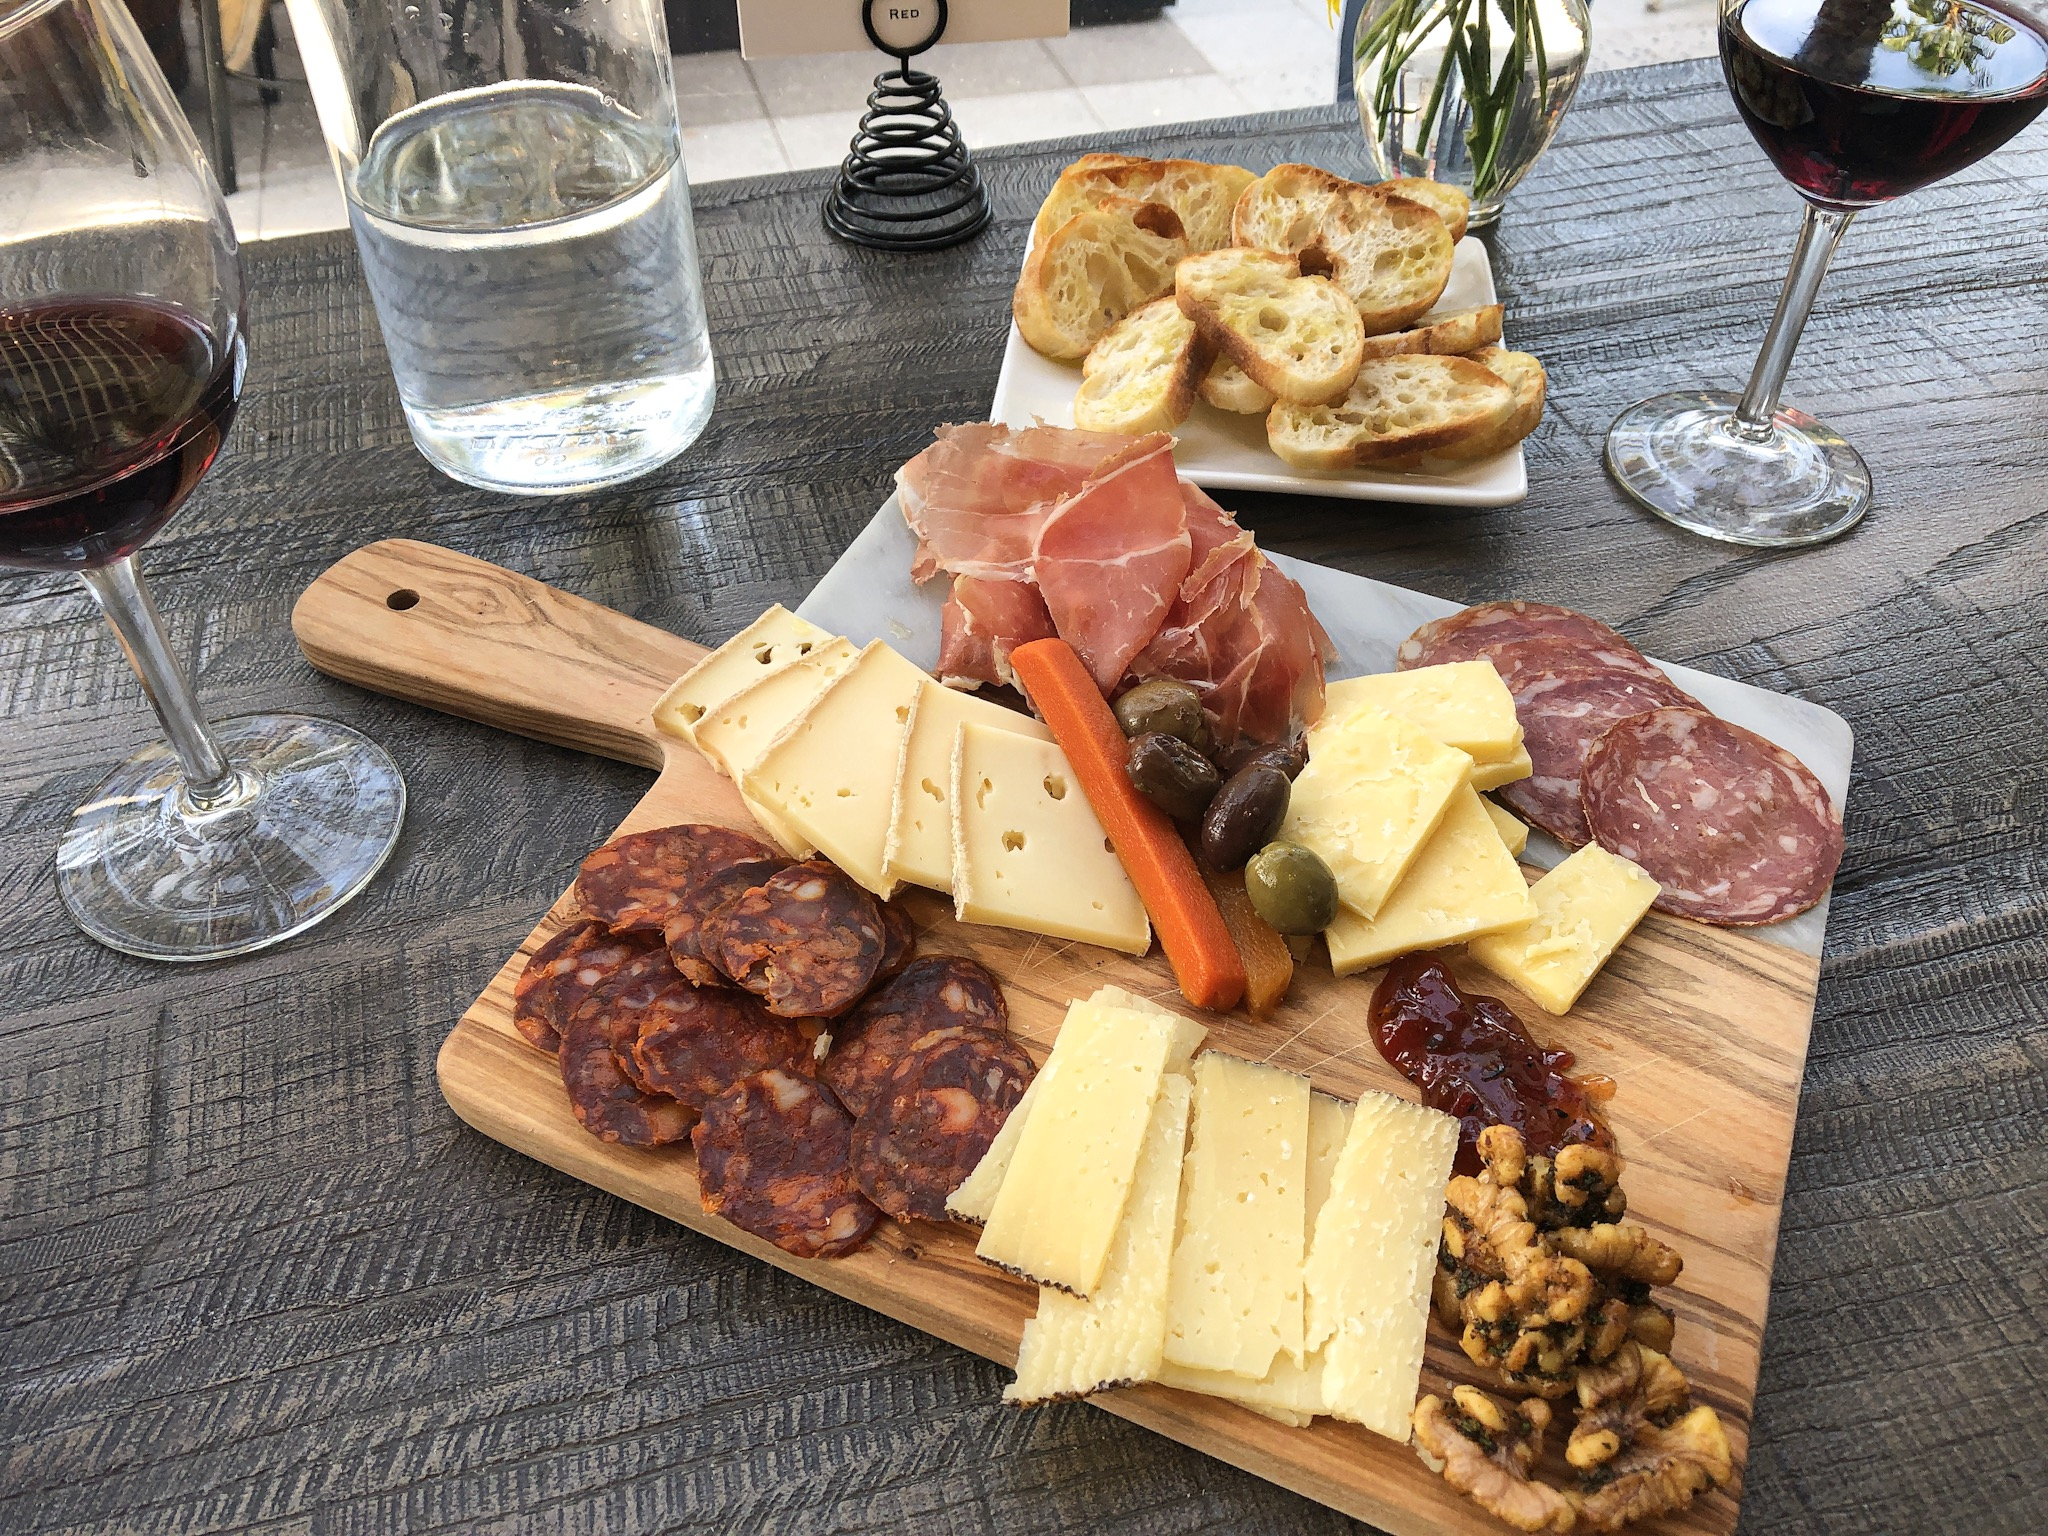 Custom Cheese and Charcuterie Board from Bacchus